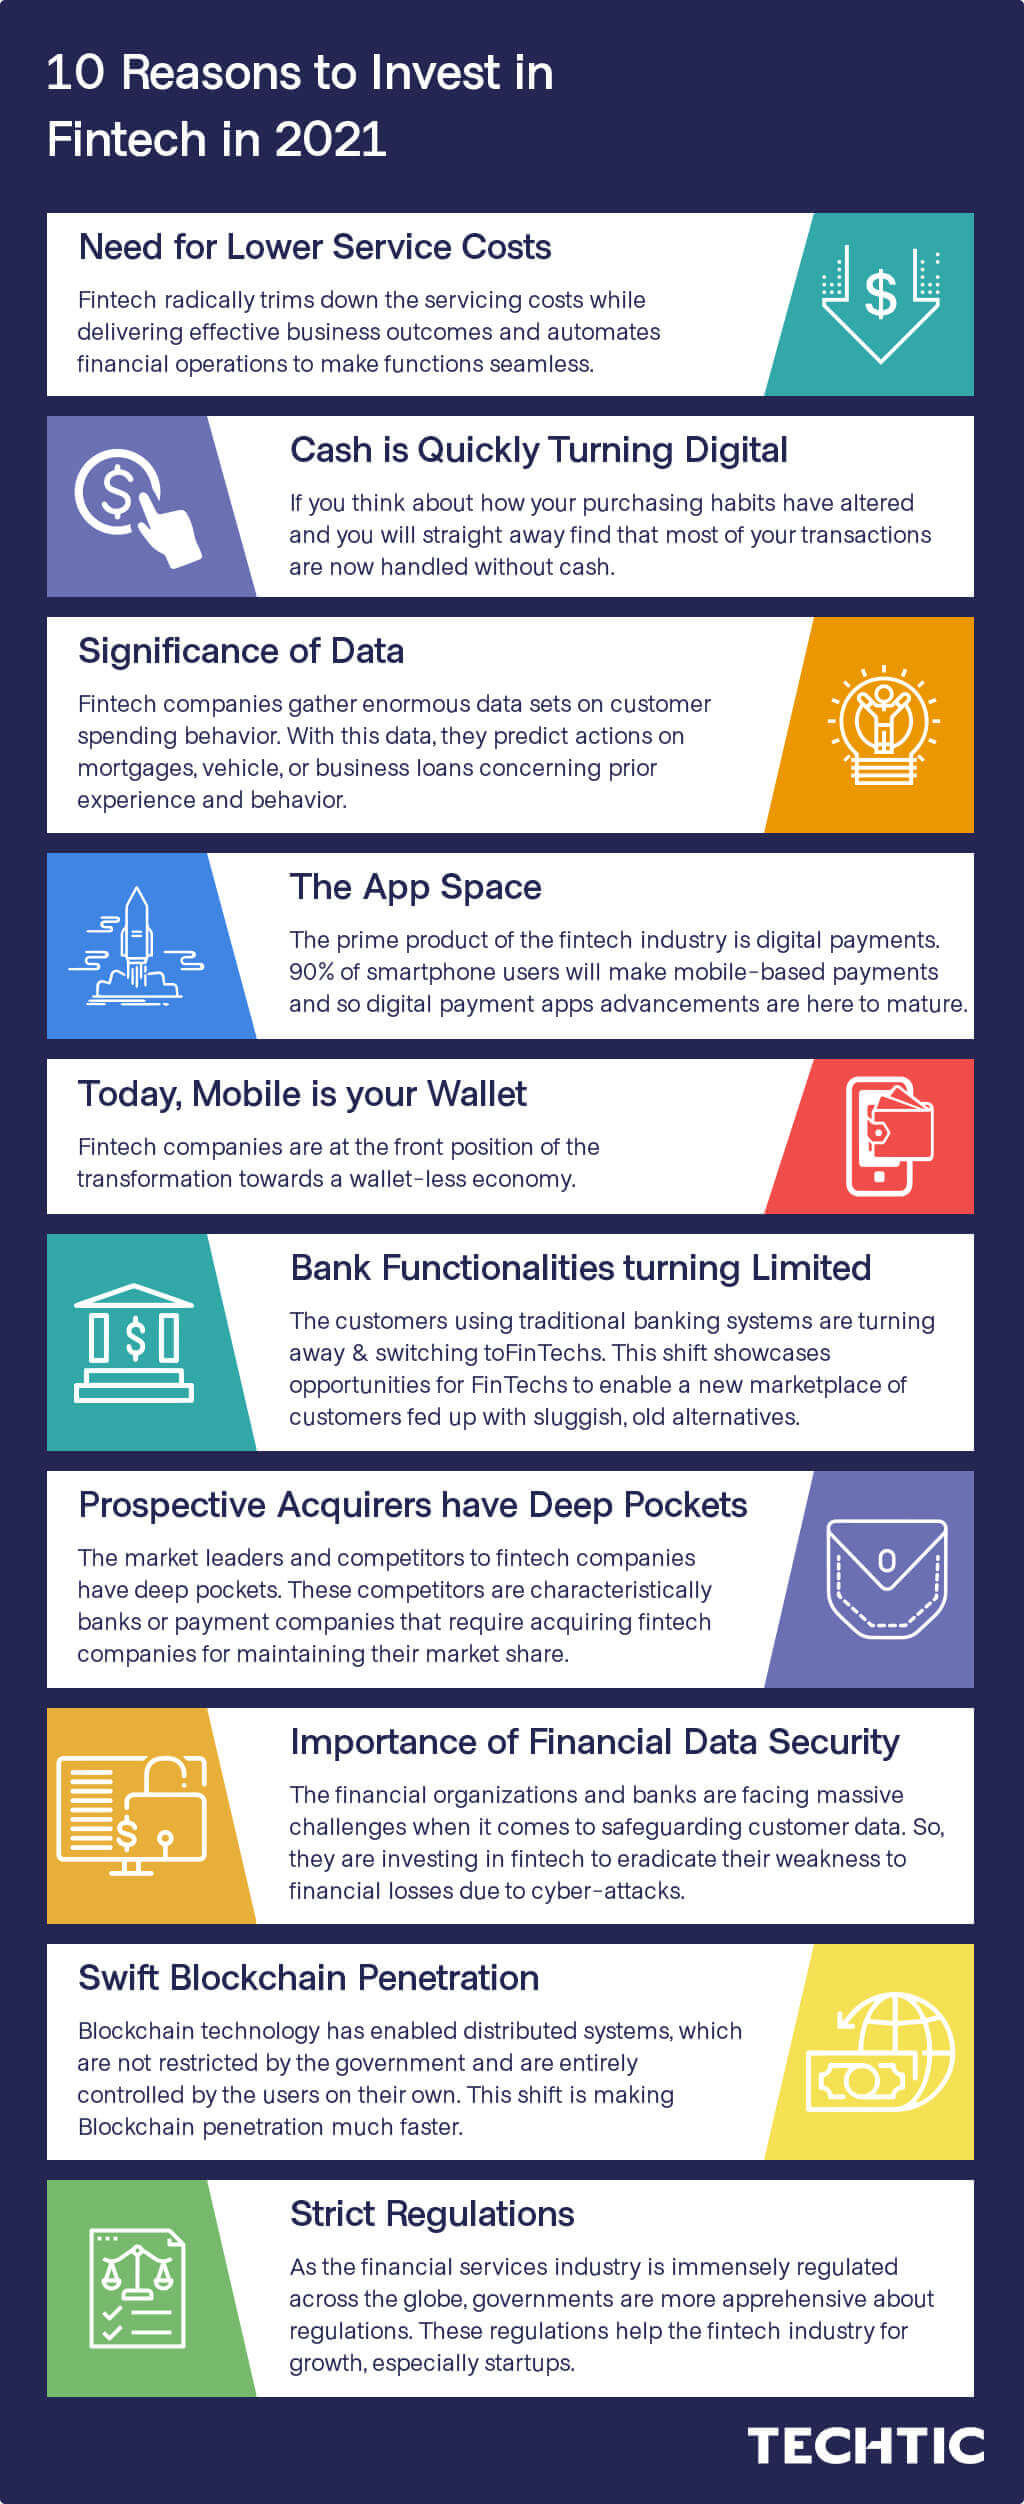 10 Reasons to Invest in Fintech